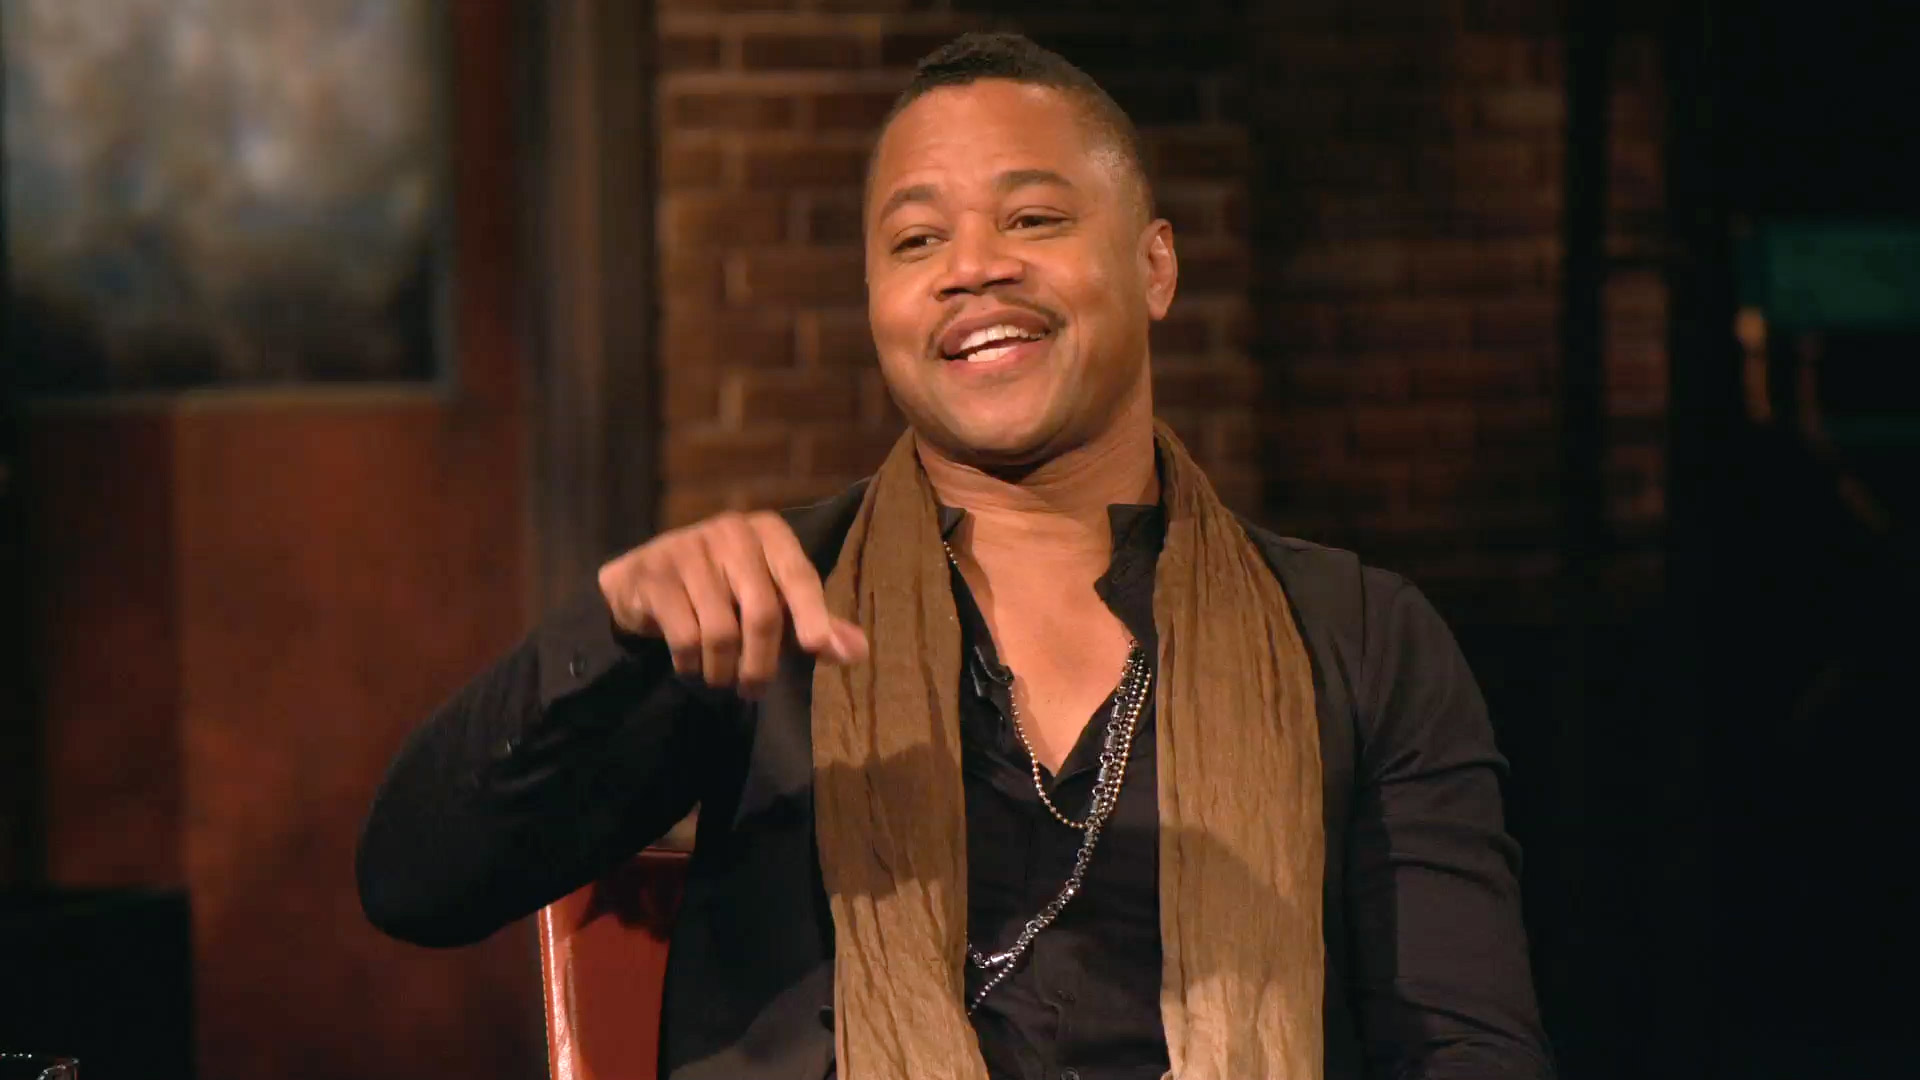 Cuba Gooding Jr. Opens Up About His Dad